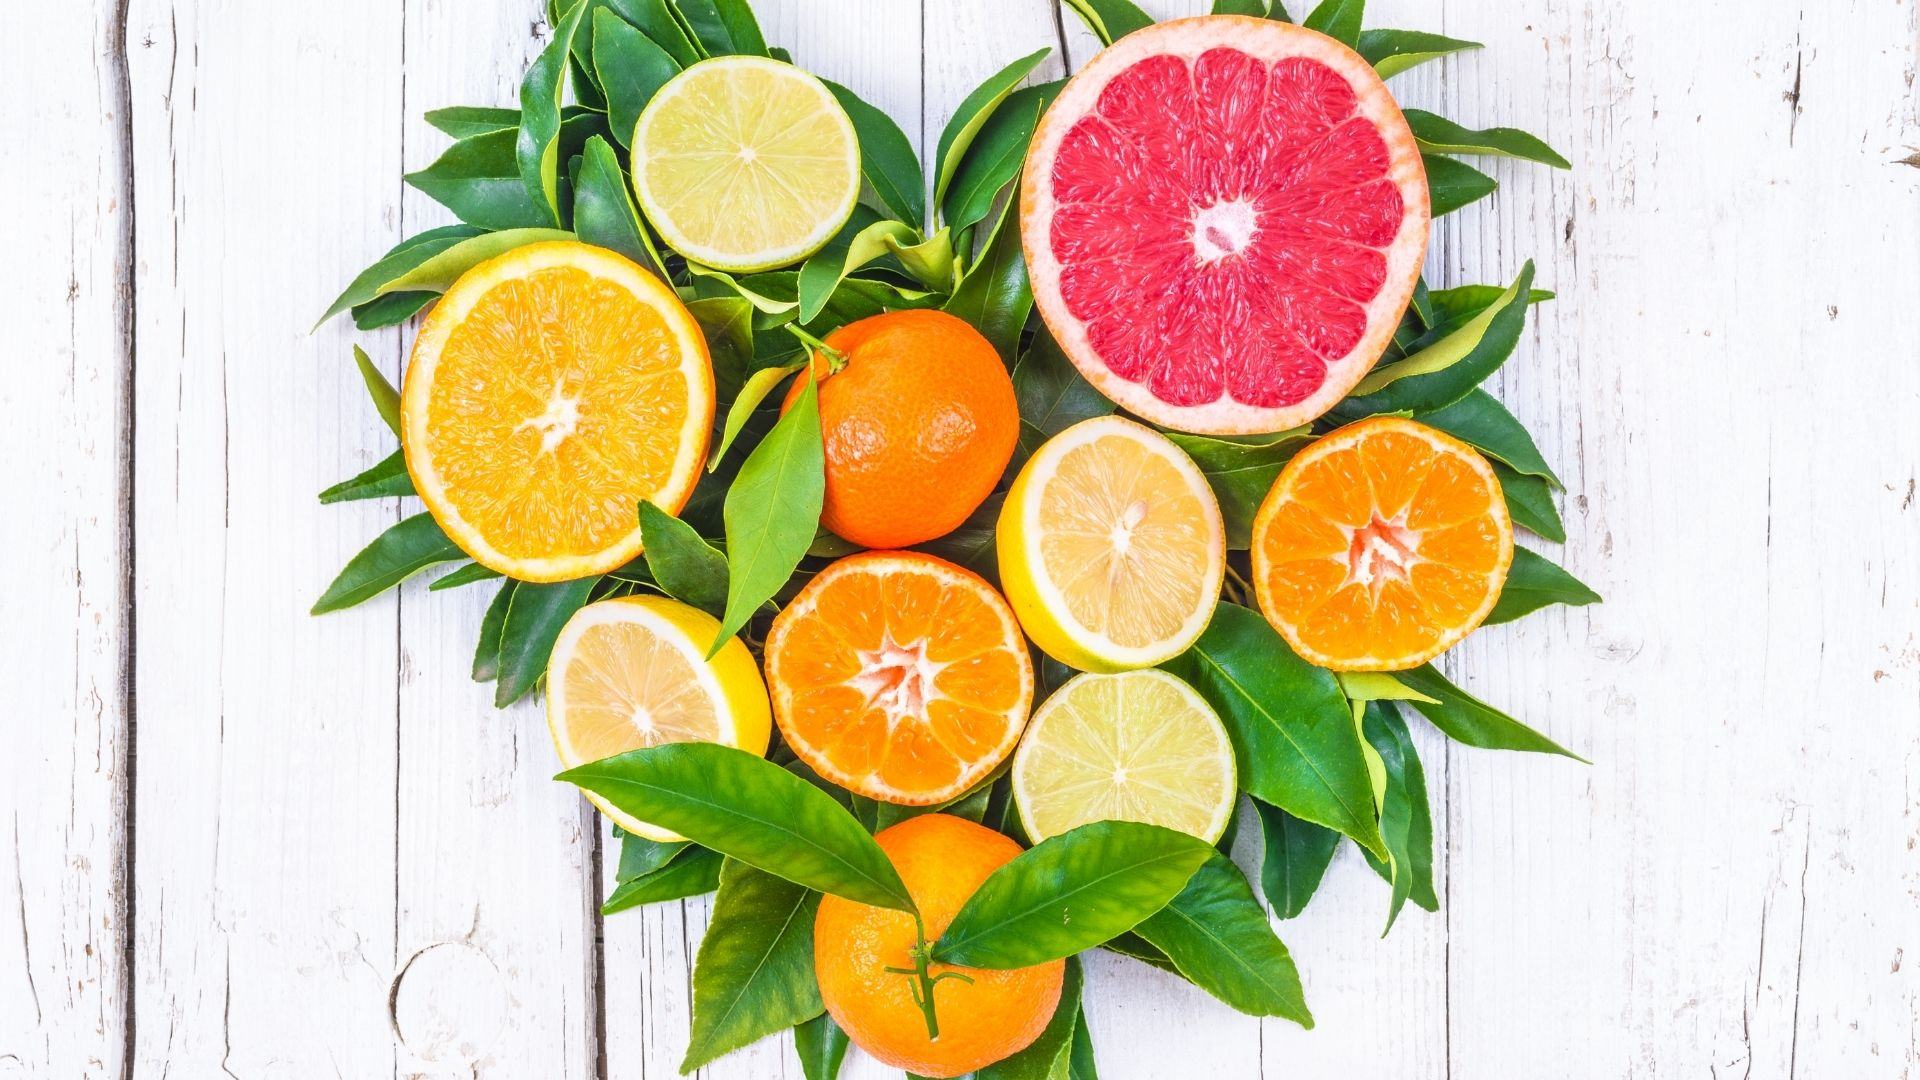 Assuaged-Citrus-in-Shape-of-Heart-Image